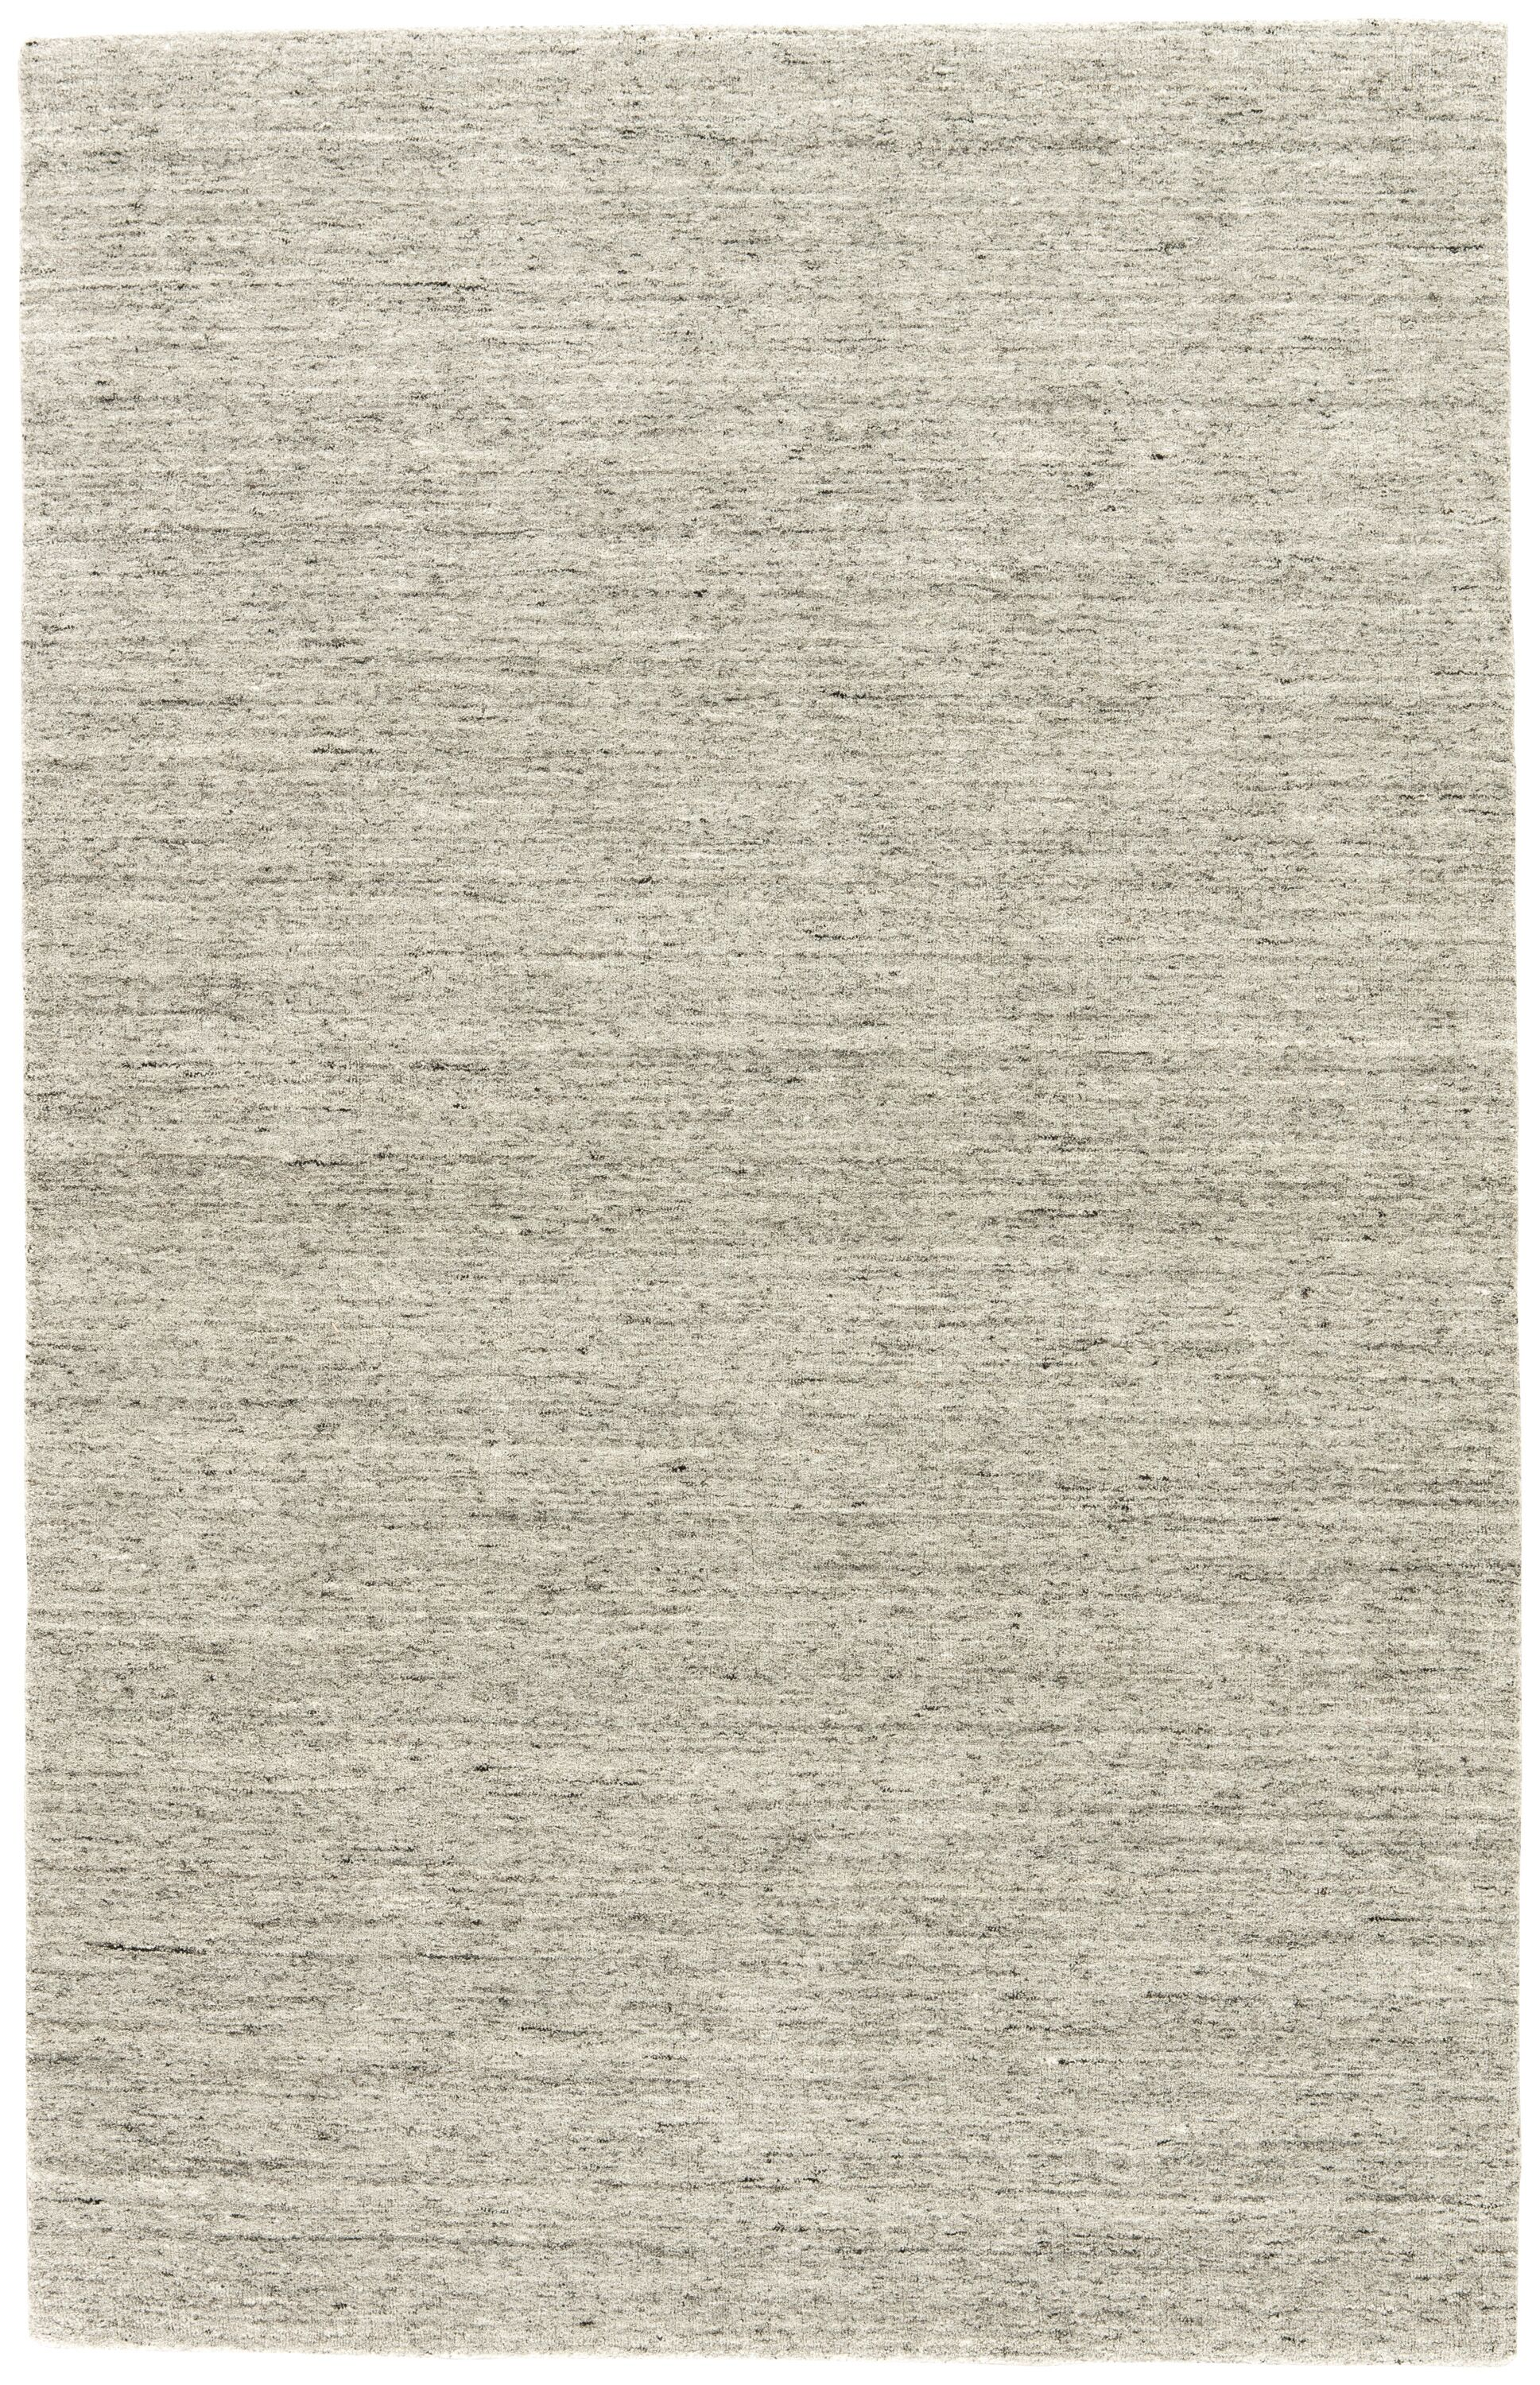 Helen Hand-Woven Gray/Taupe Area Rug Rug Size: Rectangle 5' x 8'